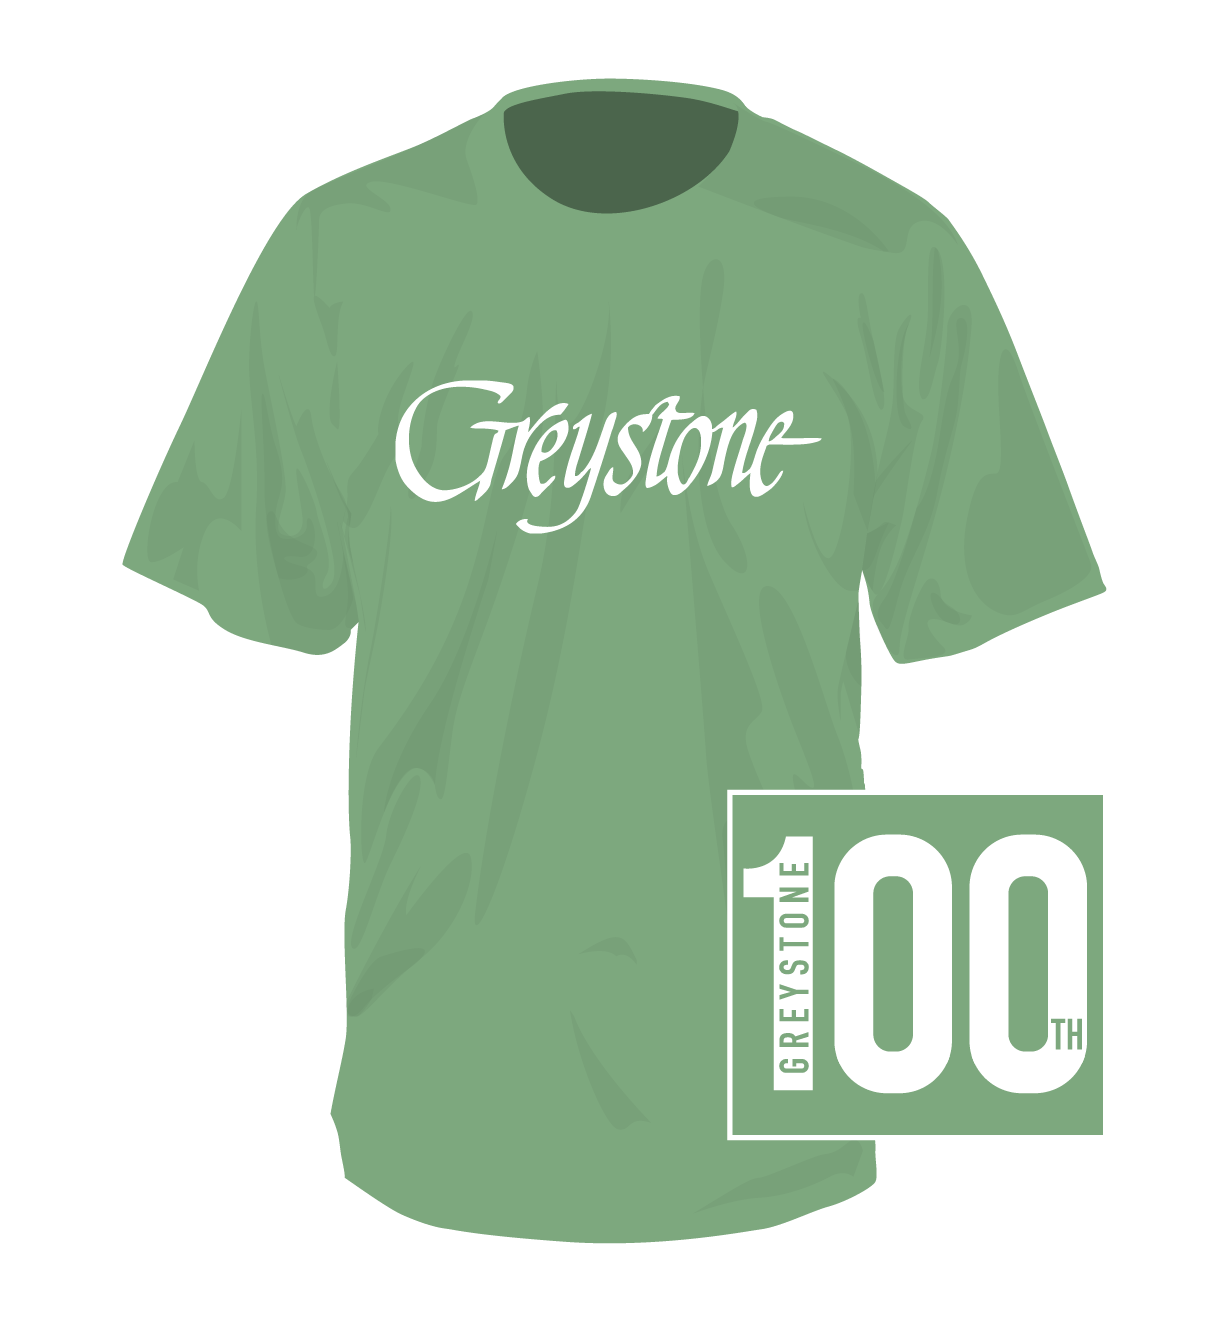 Picture of Signature Light Green Shirt, 100th - 2019, Youth Large